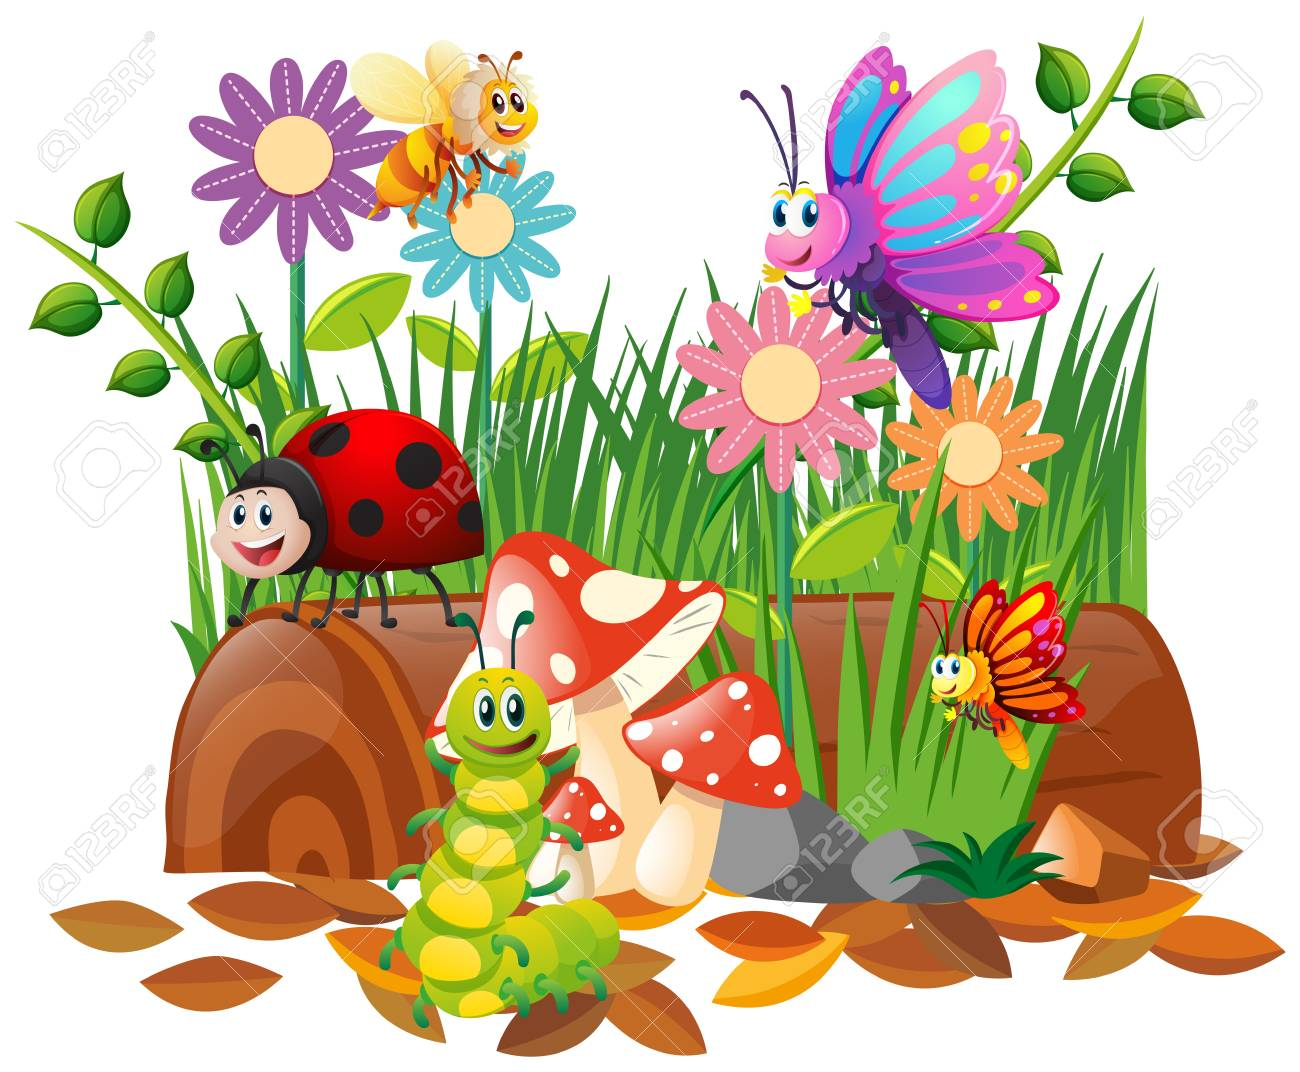 Different types of insects in garden illustration